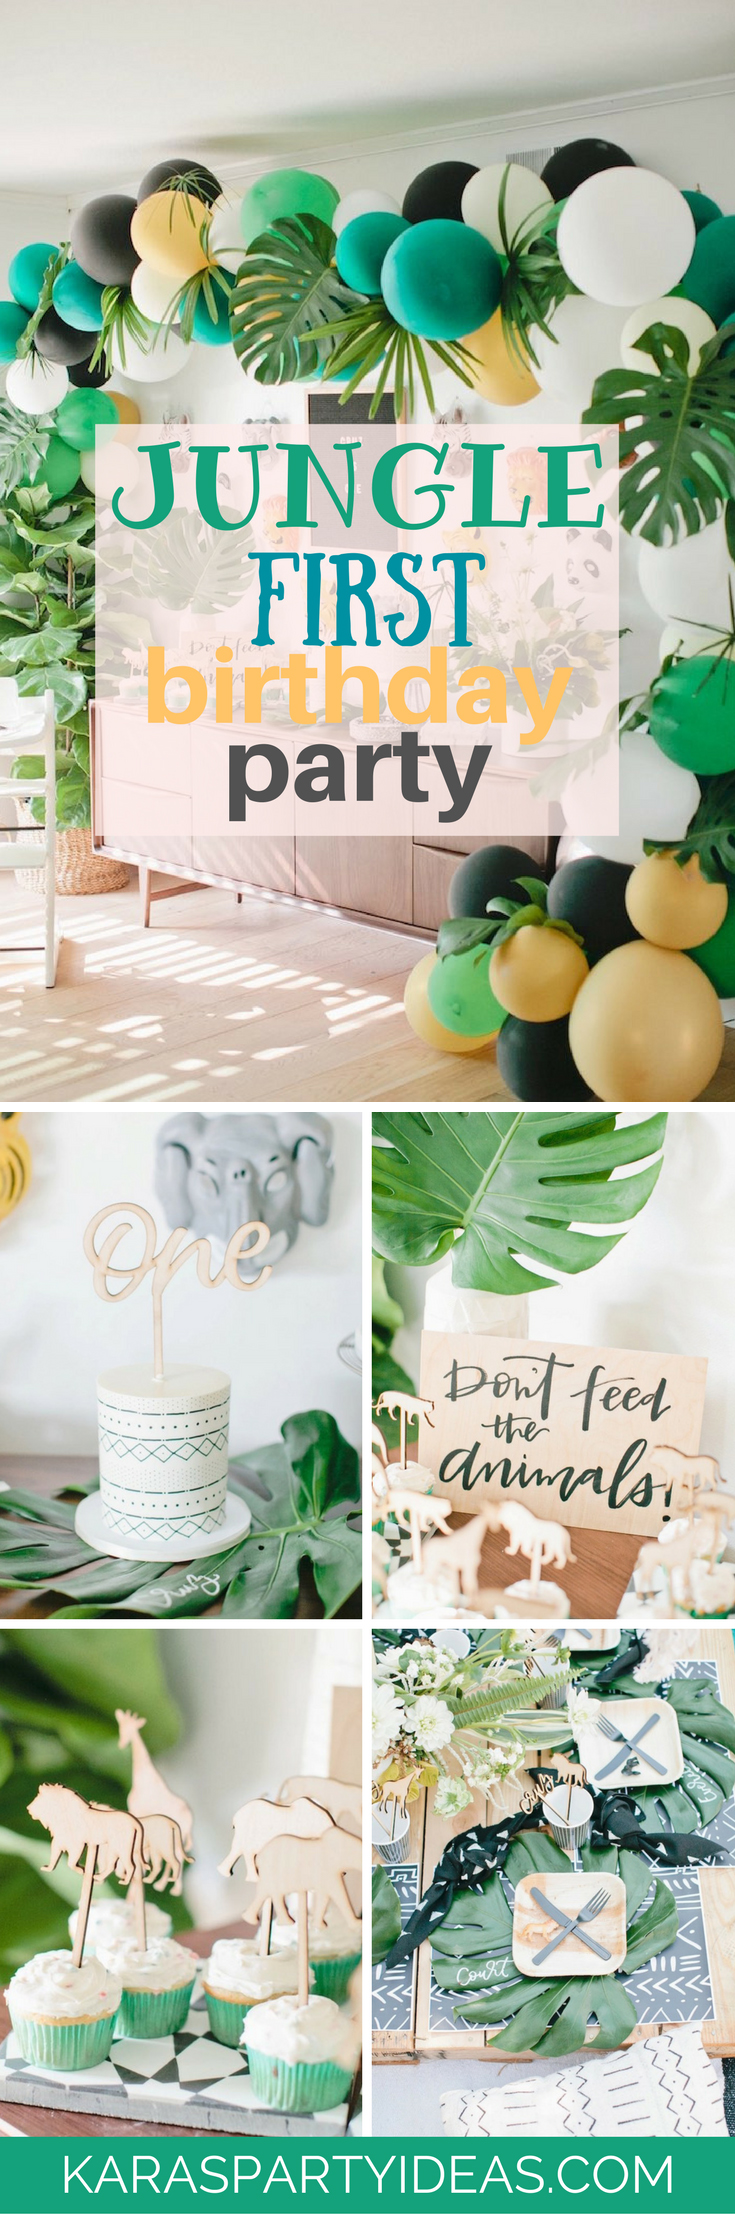 Jungle First Birthday Party via Kara's Party Ideas - KarasPartyIdeas.com